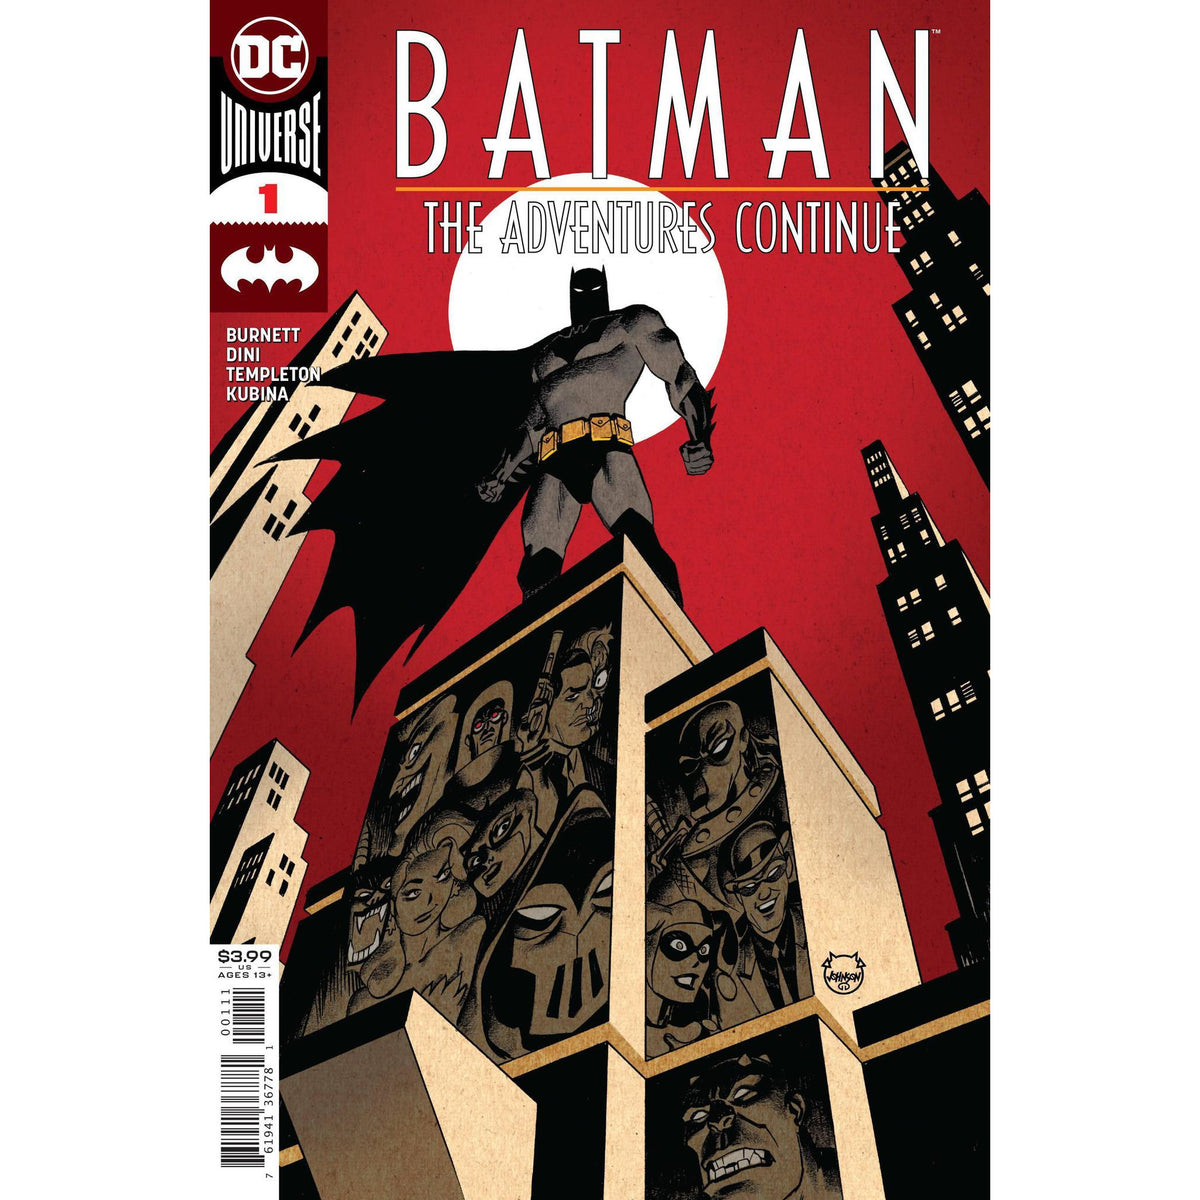 BATMAN: THE ADVENTURES CONTINUE #1 - MAIN COVER